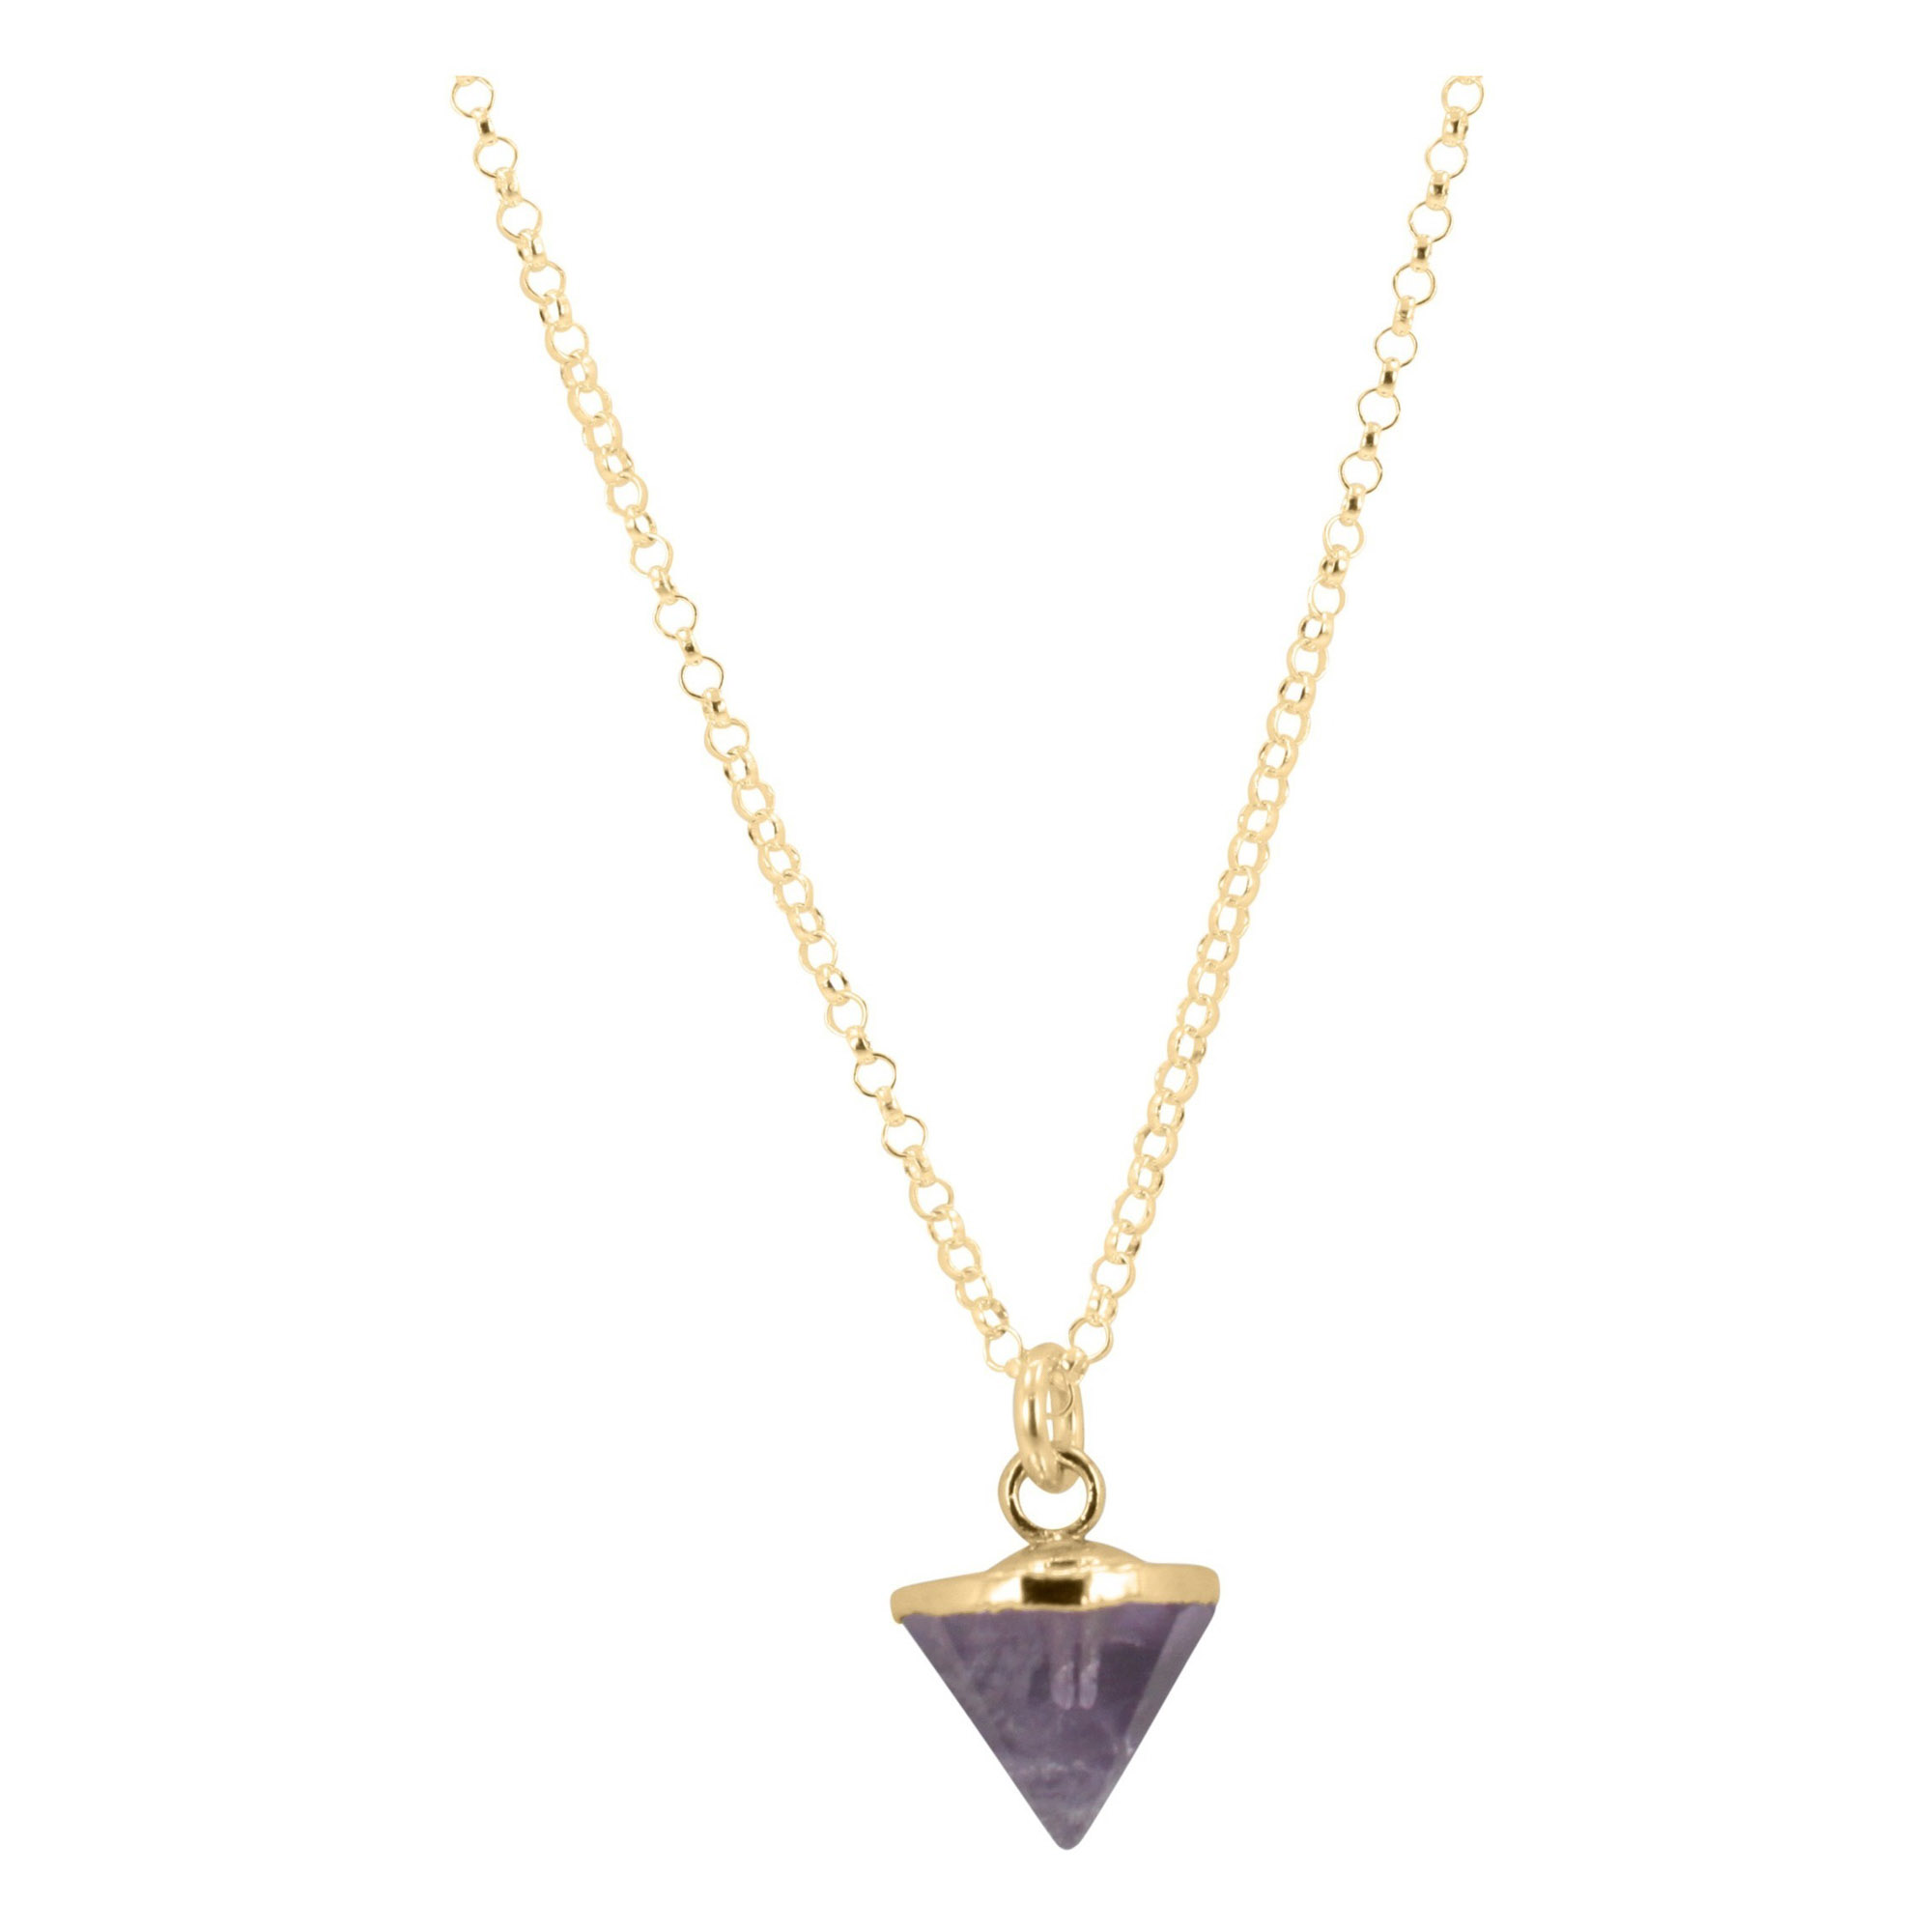 Small Gold Gem Spike Necklace on 24in. Chain, Stone Choice, #6451-yg (Blue Chalcedony) by